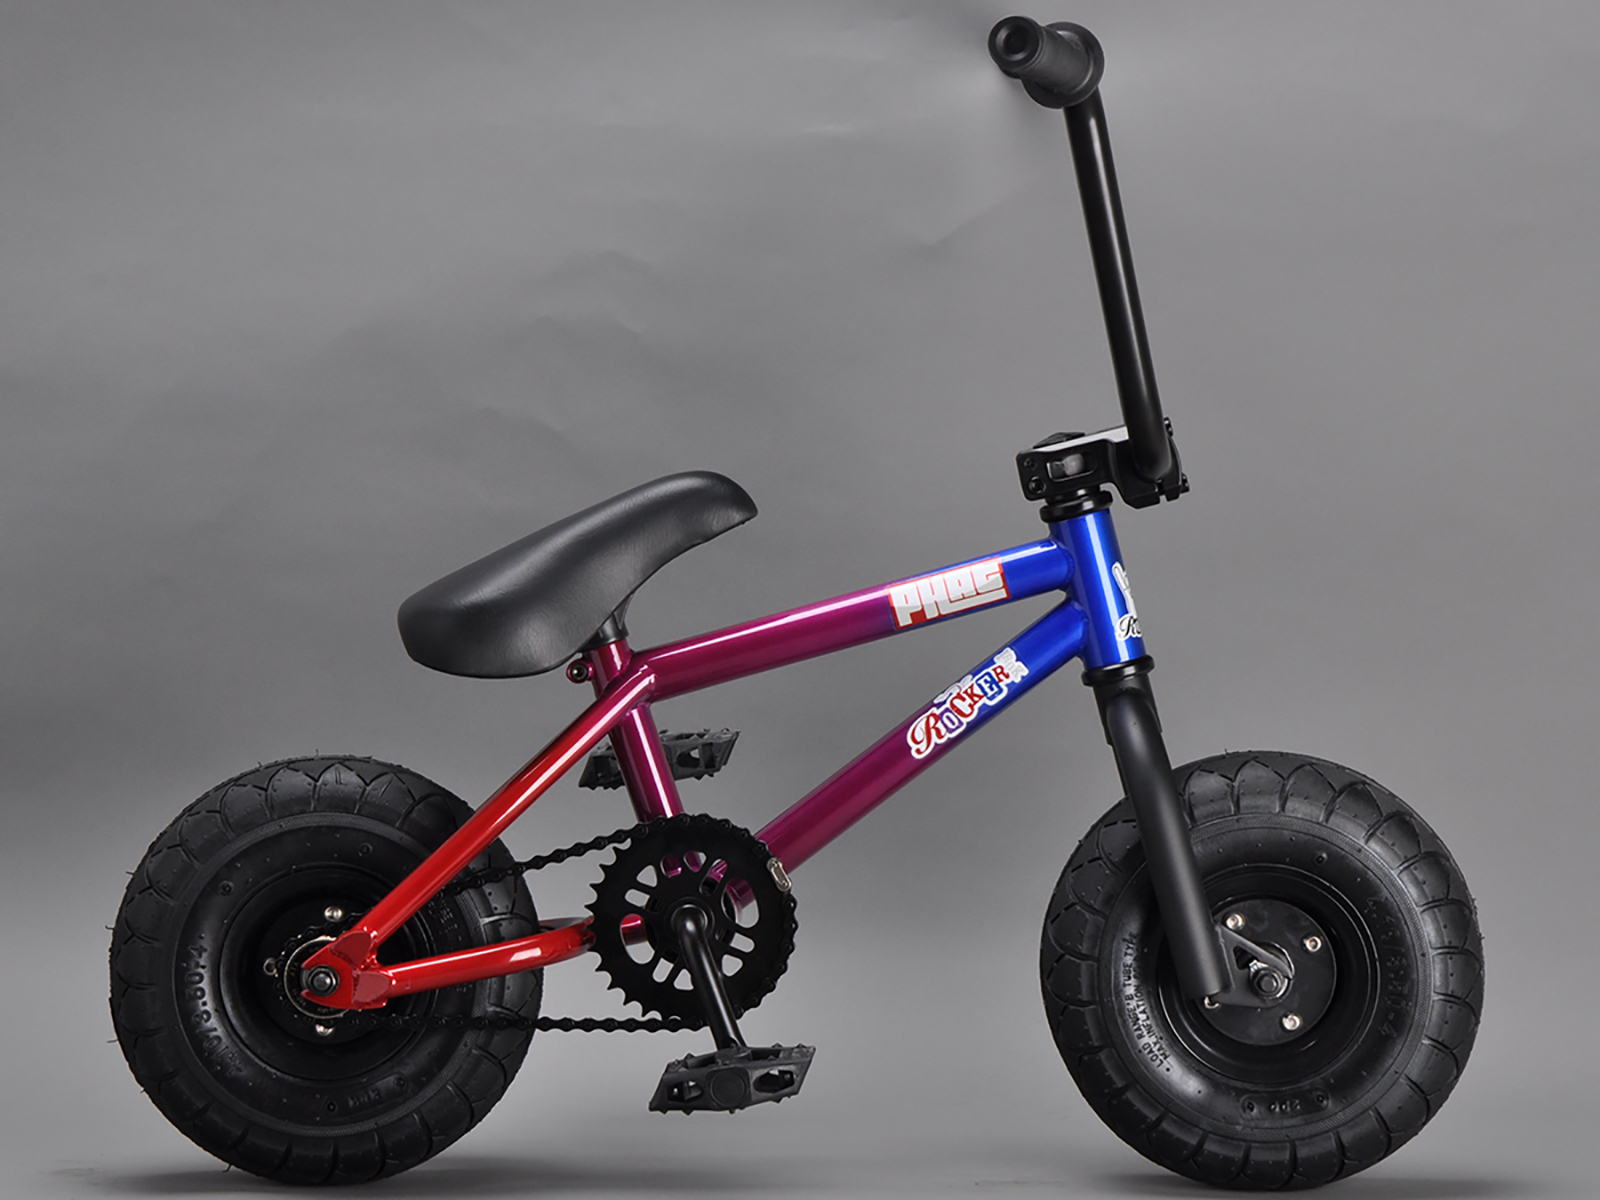 http://rockerbmx.com/images/stories/virtuemart/product/Phat%20IROK%20Side%20View%20(Street%20Pro%20Tyres)%20Enlarged.jpg